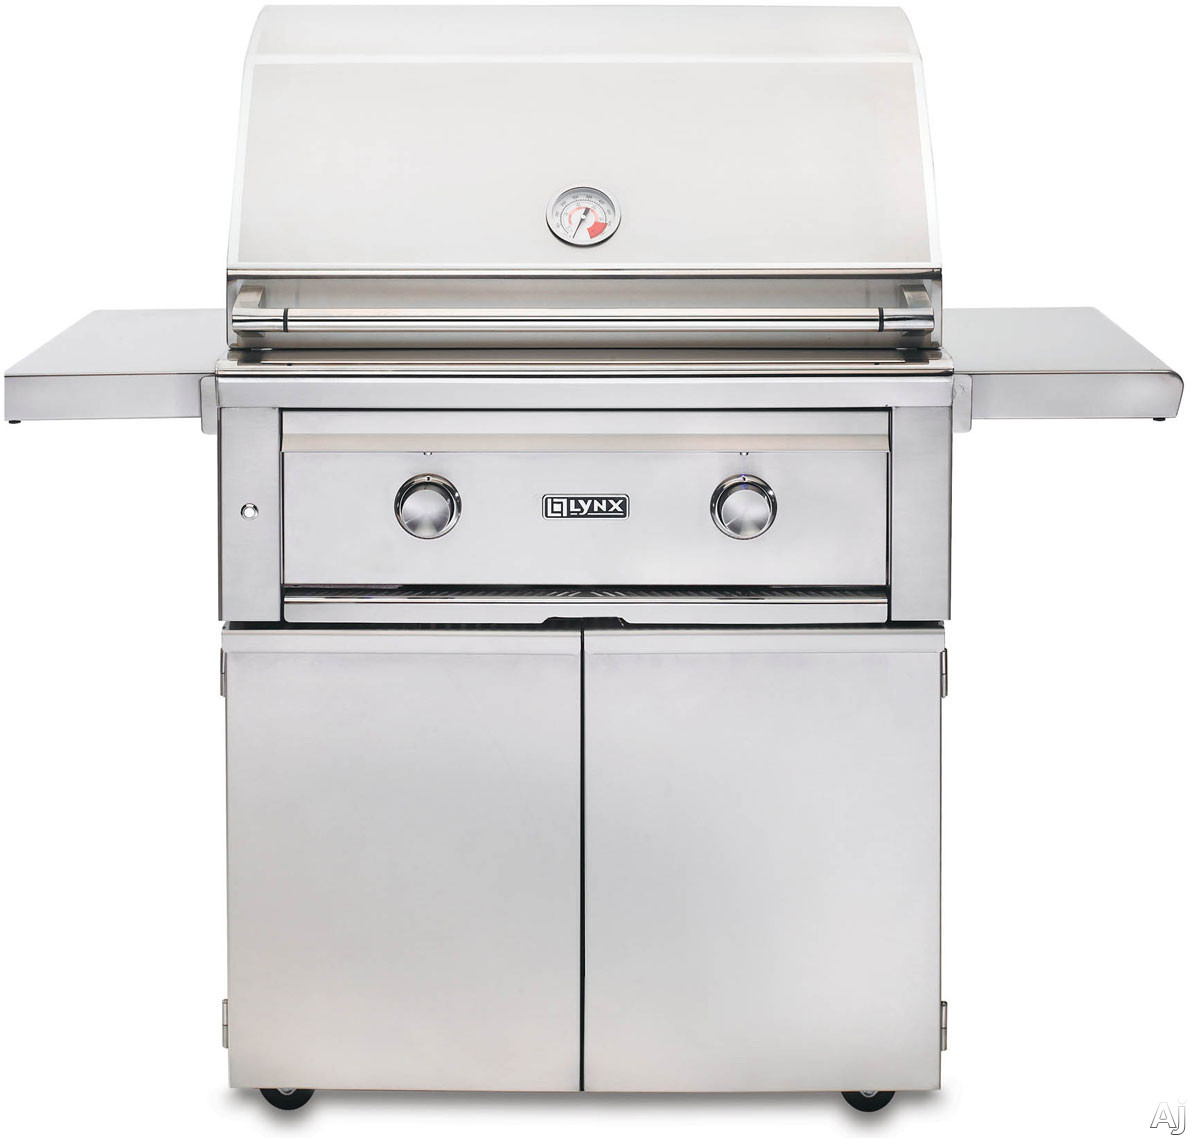 Lynx Sedona Series L500PSNG 30 Inch Built-in Gas Grill with 733 sq. in. Cooking Surface, 46,000 Total BTUs, Stainless Steel Tube Burner, ProSear Burner, Halogen Surface Light and Temperature Gauge: Natural Gas